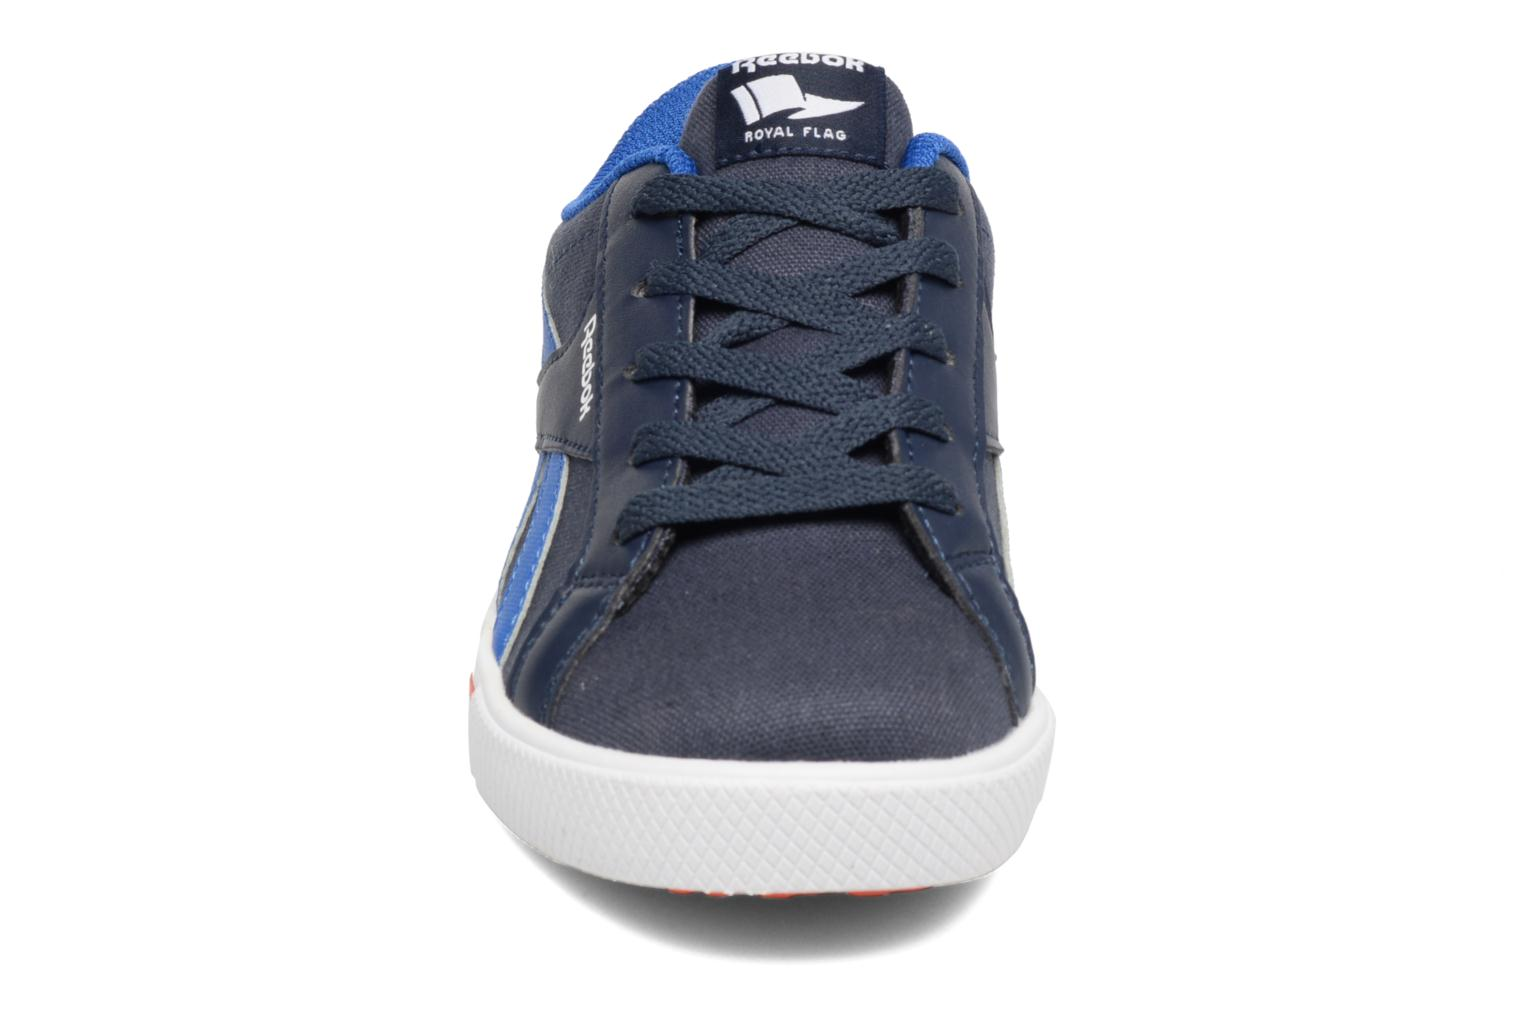 REEBOK ROYAL COMP LOW CVS Collegiate Navy/Awesome Blue/Wht/Primal